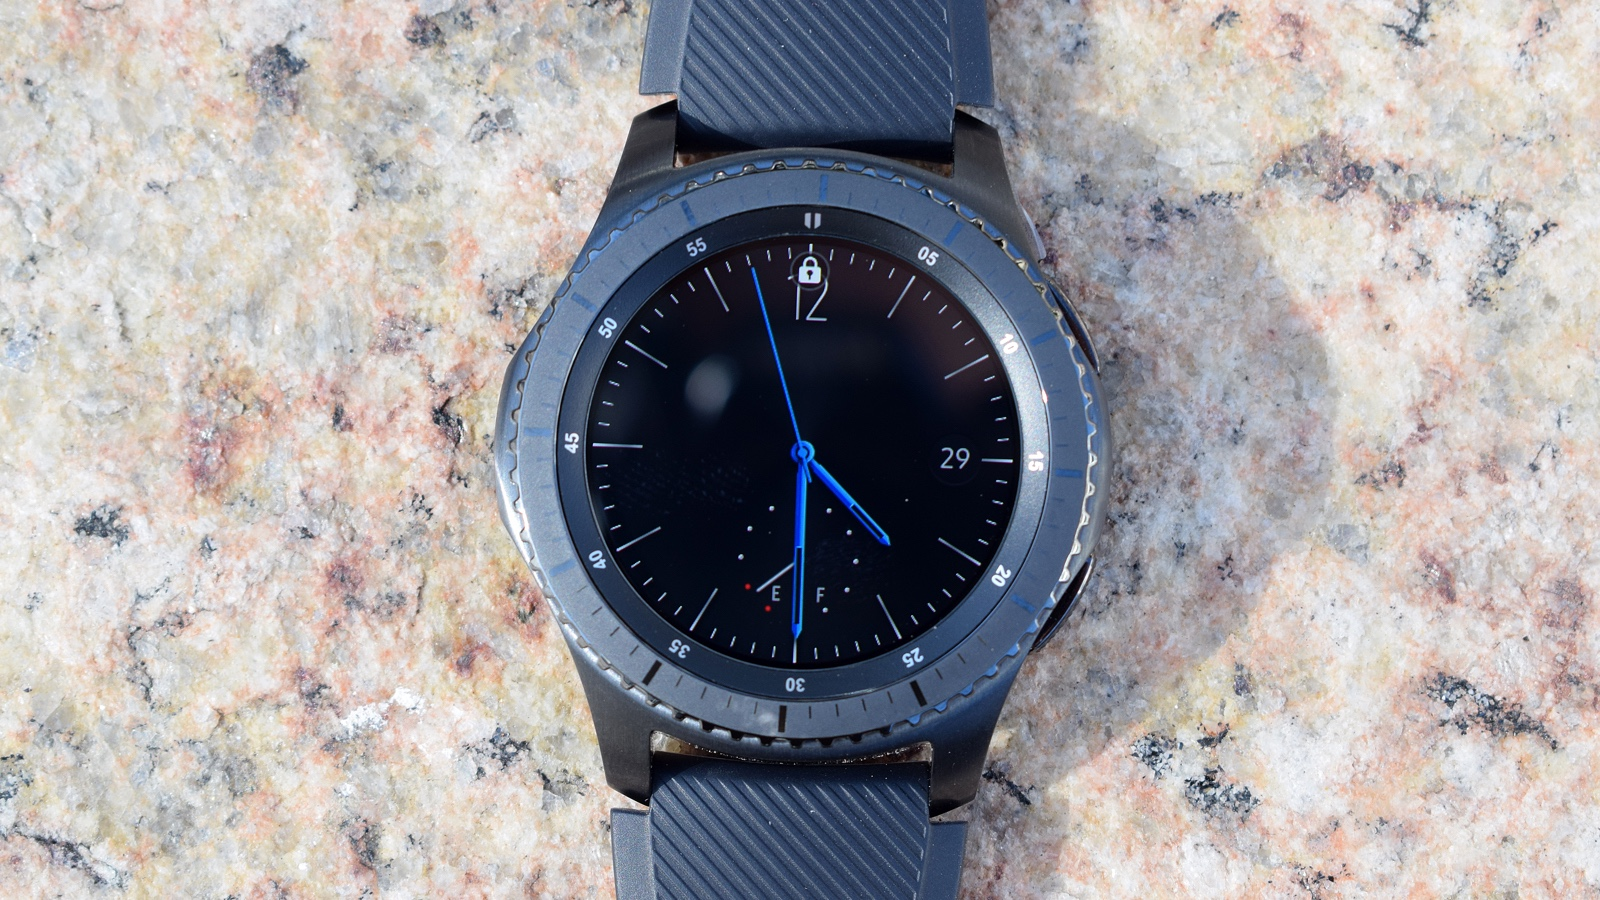 Save $100 on the Samsung Gear S3 Frontier